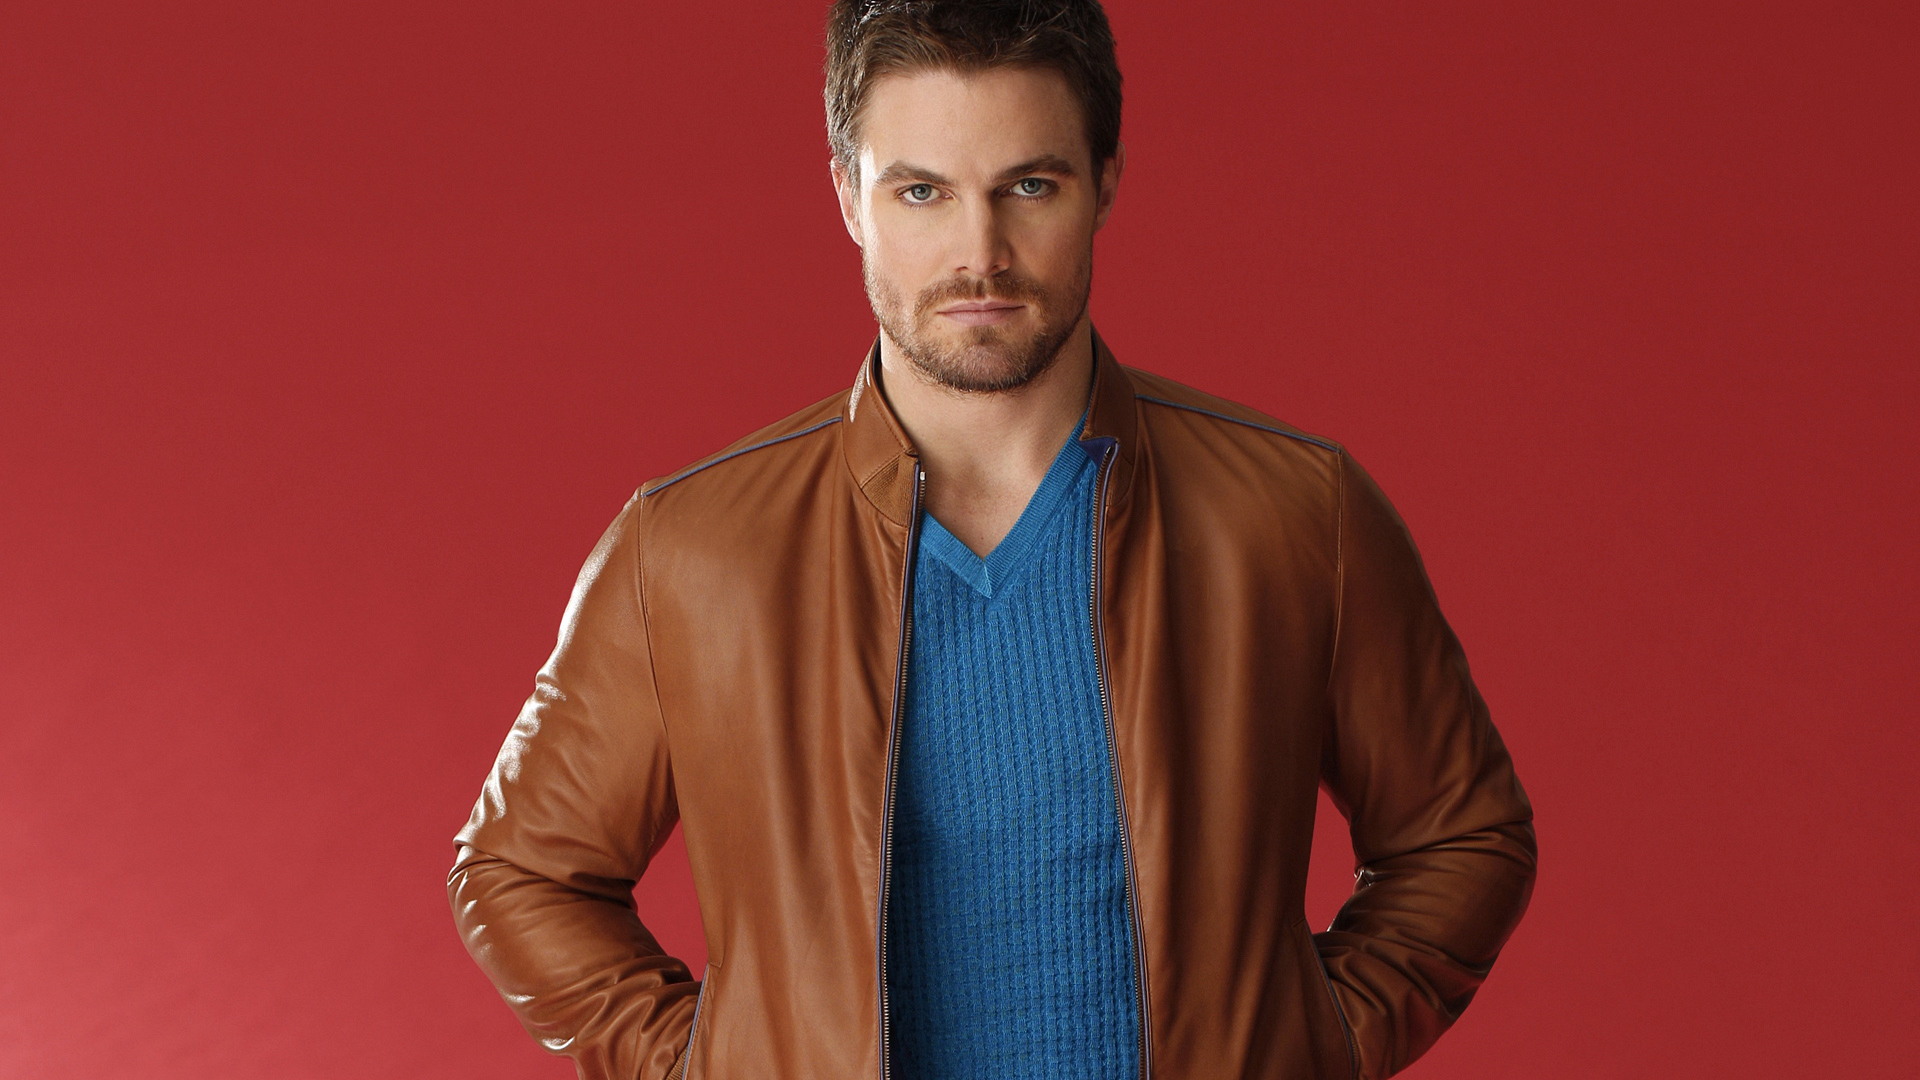 TV hunk Stephen Amell trades his superhero costume for high fashion